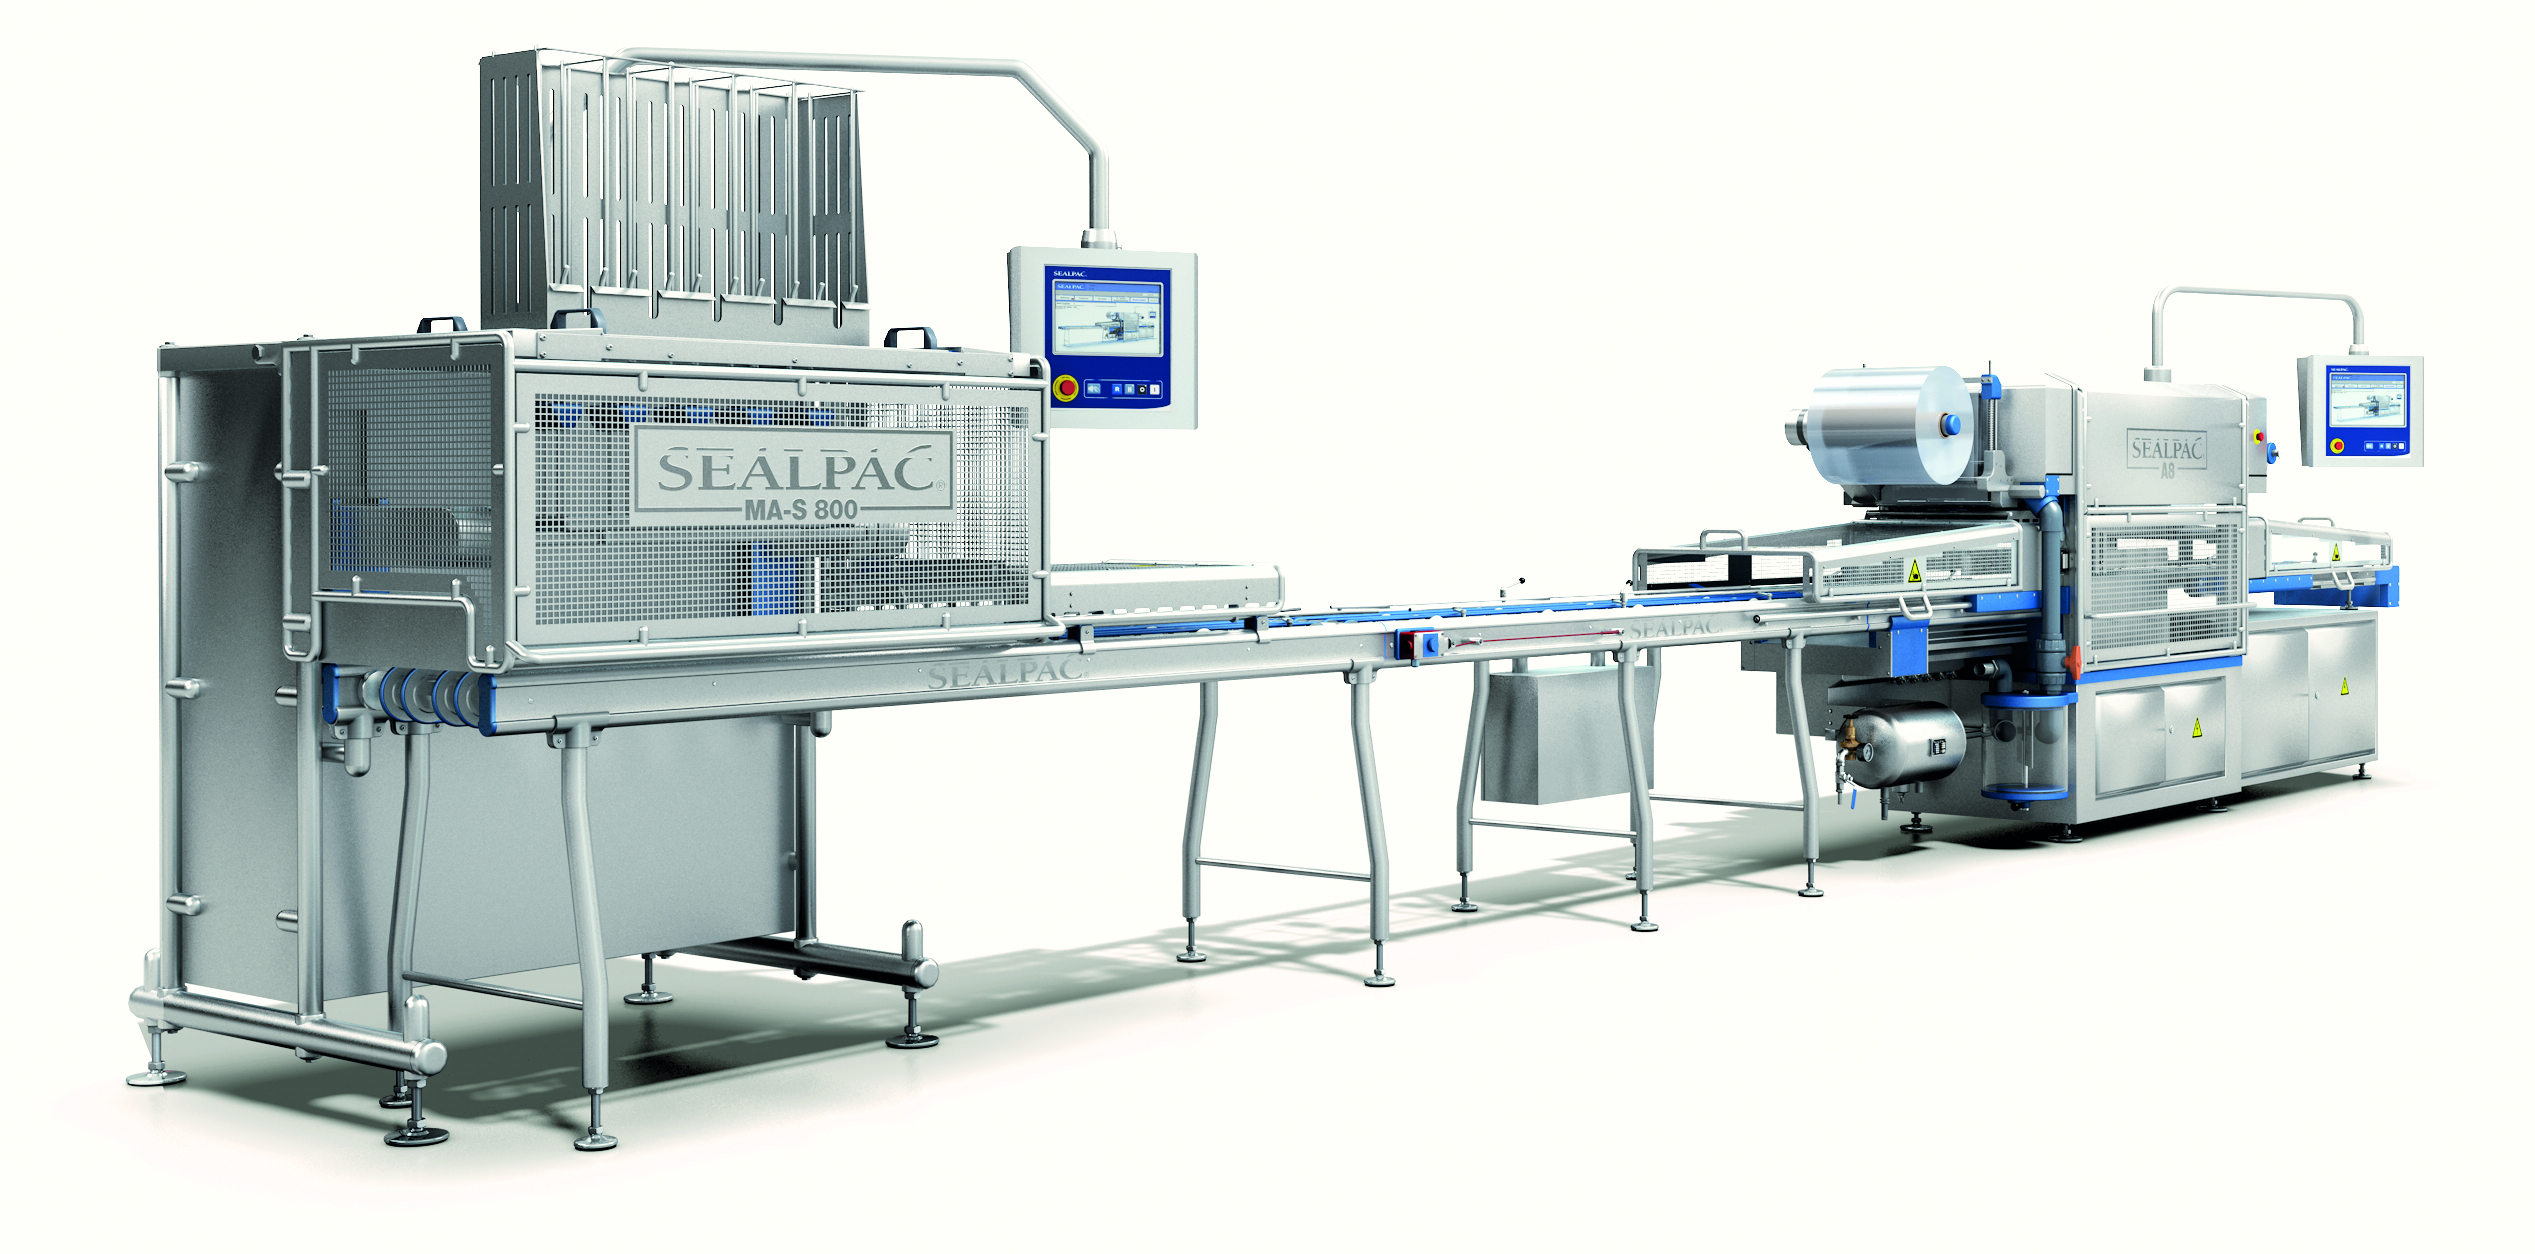 Picture_1_Sealpac_A8_traysealer_MA-S_high